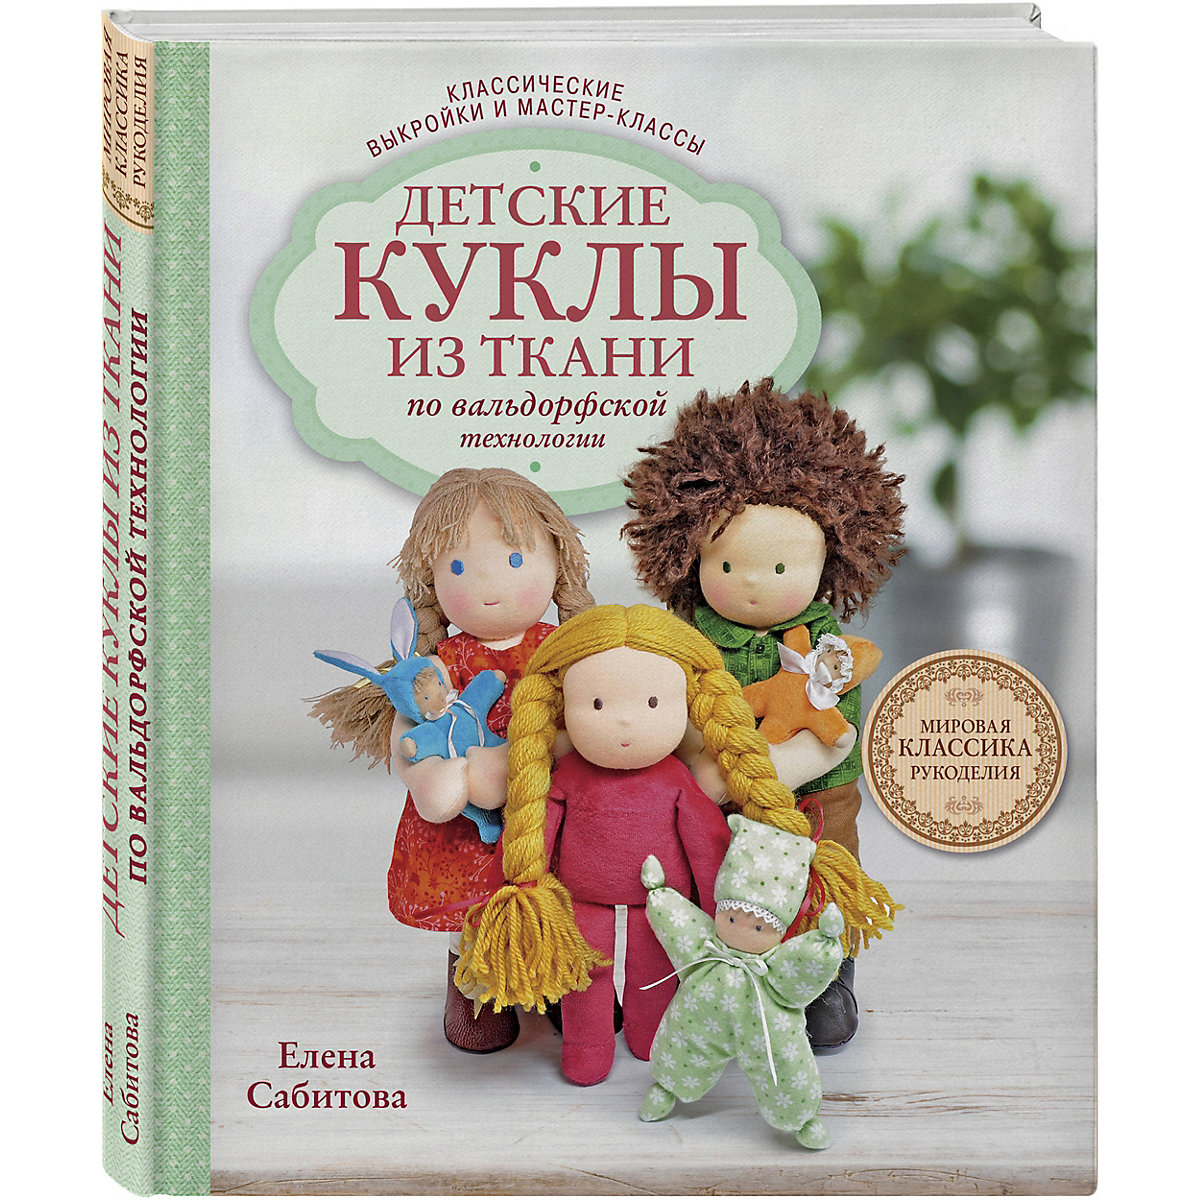 Books EKSMO 9556114 Children Education Encyclopedia Alphabet Dictionary Book For Baby MTpromo